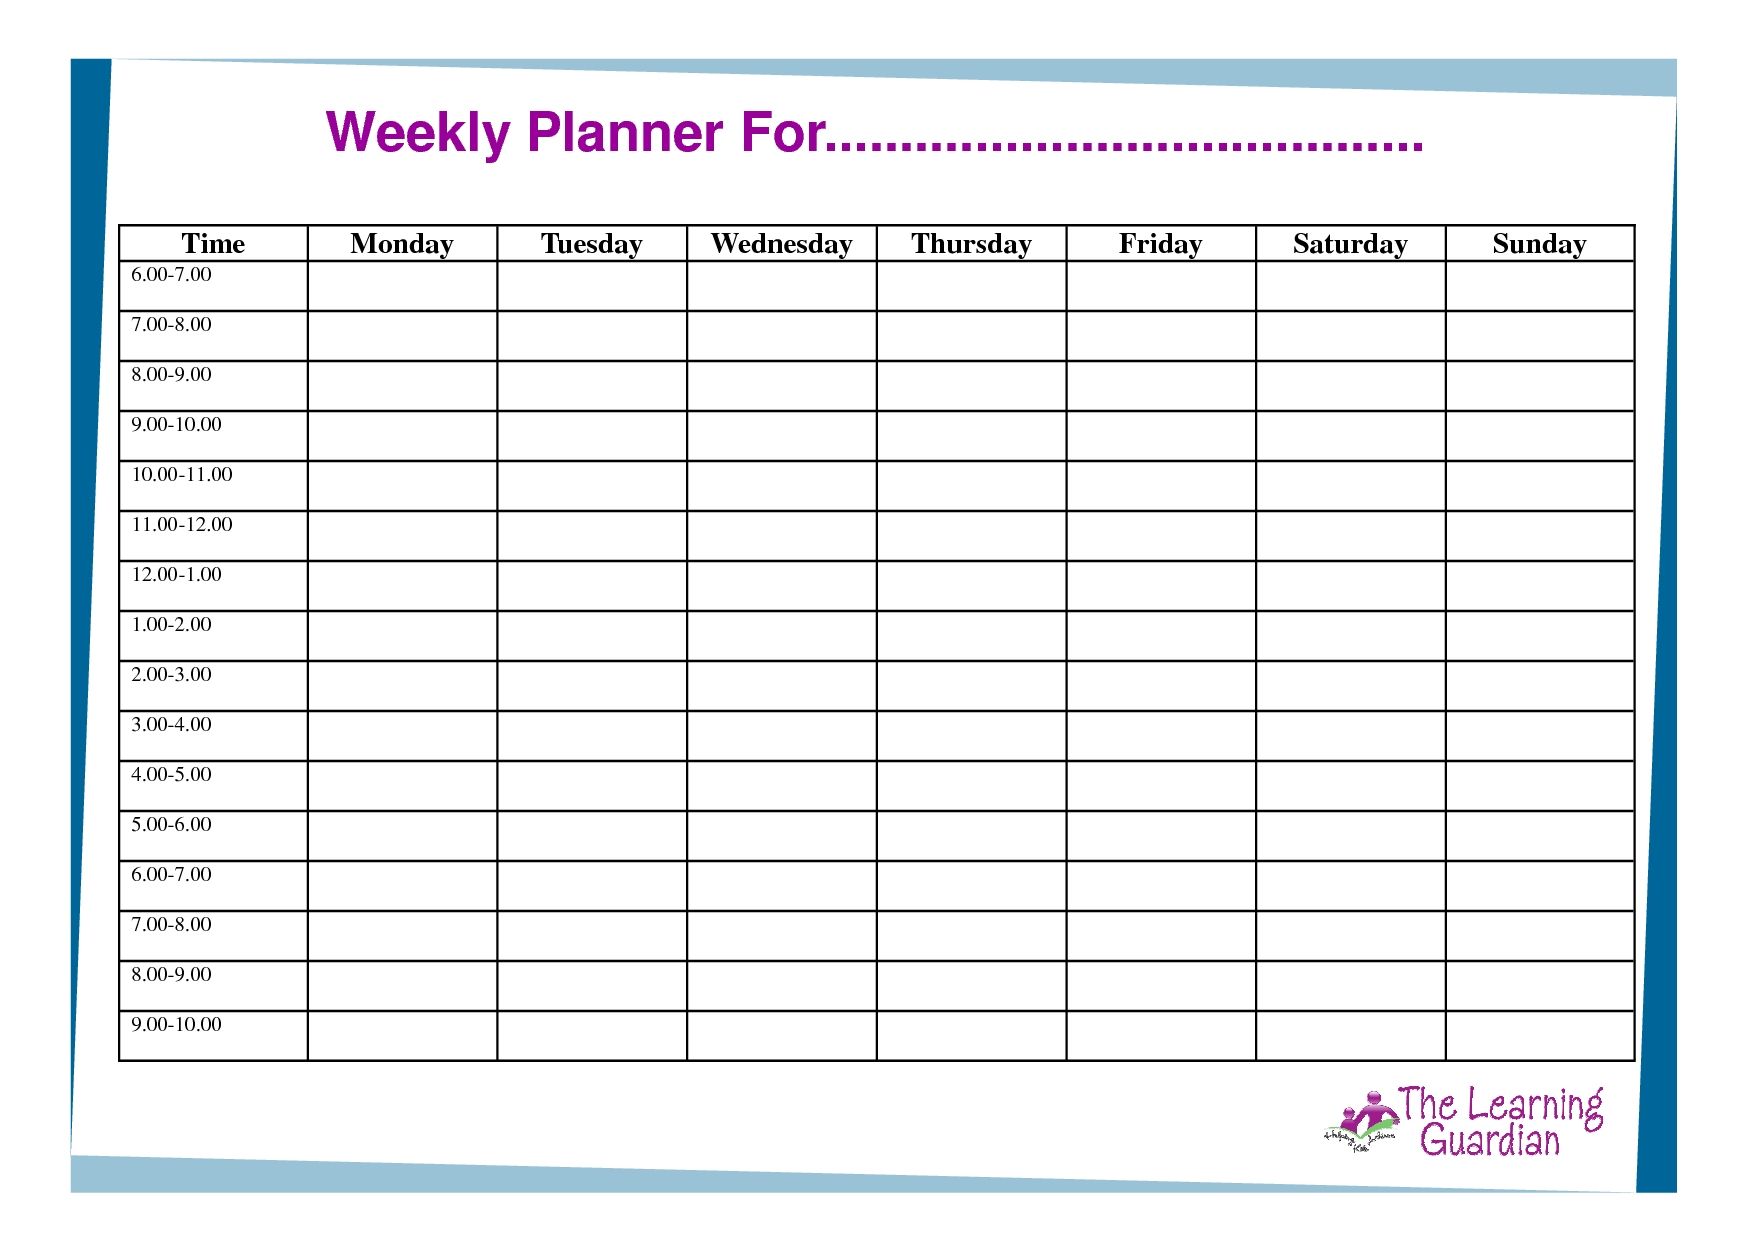 Weekly Schedule Template Monday Friday With Times - Firuse intended for Weekly Planner With Time Slots Word Template